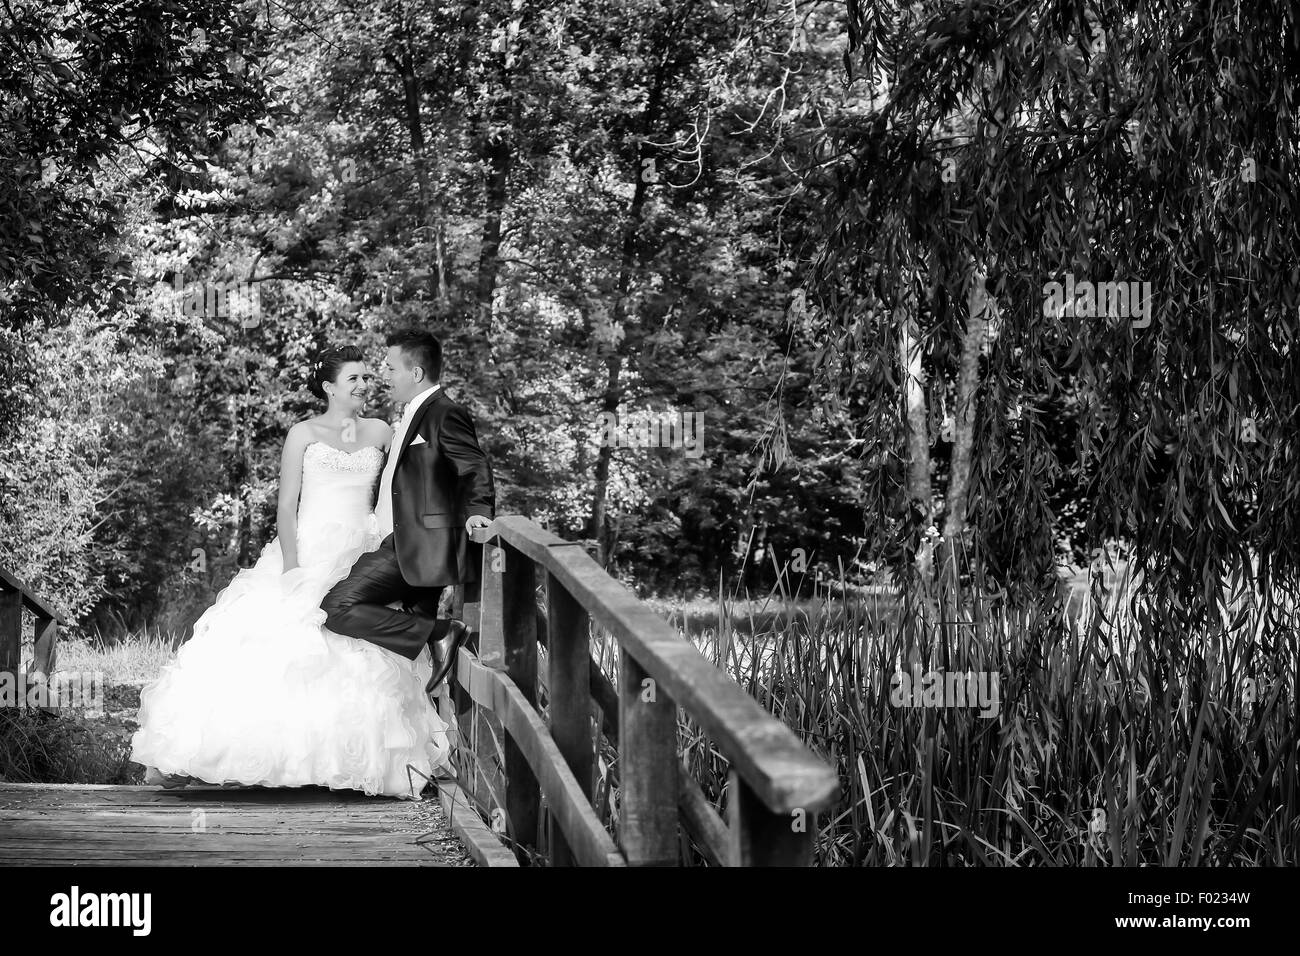 The bride and groom standing on a wooden bridge in nature and  looking at each other while the groom is leaning - Stock Image